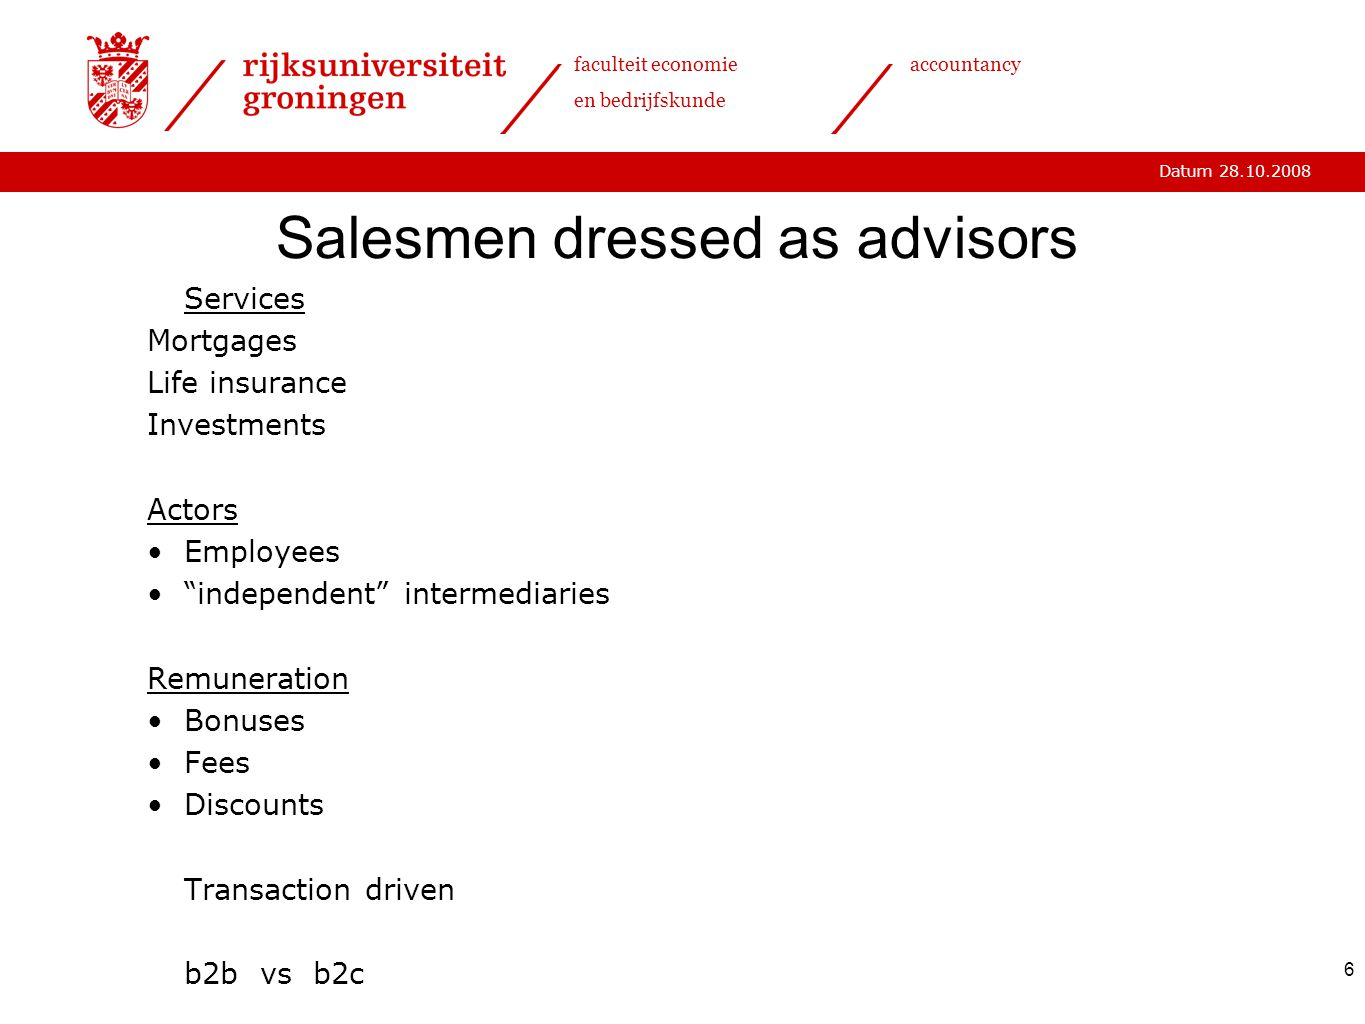 Datum 28.10.2008 faculteit economie en bedrijfskunde accountancy 6 Salesmen dressed as advisors Services Mortgages Life insurance Investments Actors Employees independent intermediaries Remuneration Bonuses Fees Discounts Transaction driven b2b vs b2c